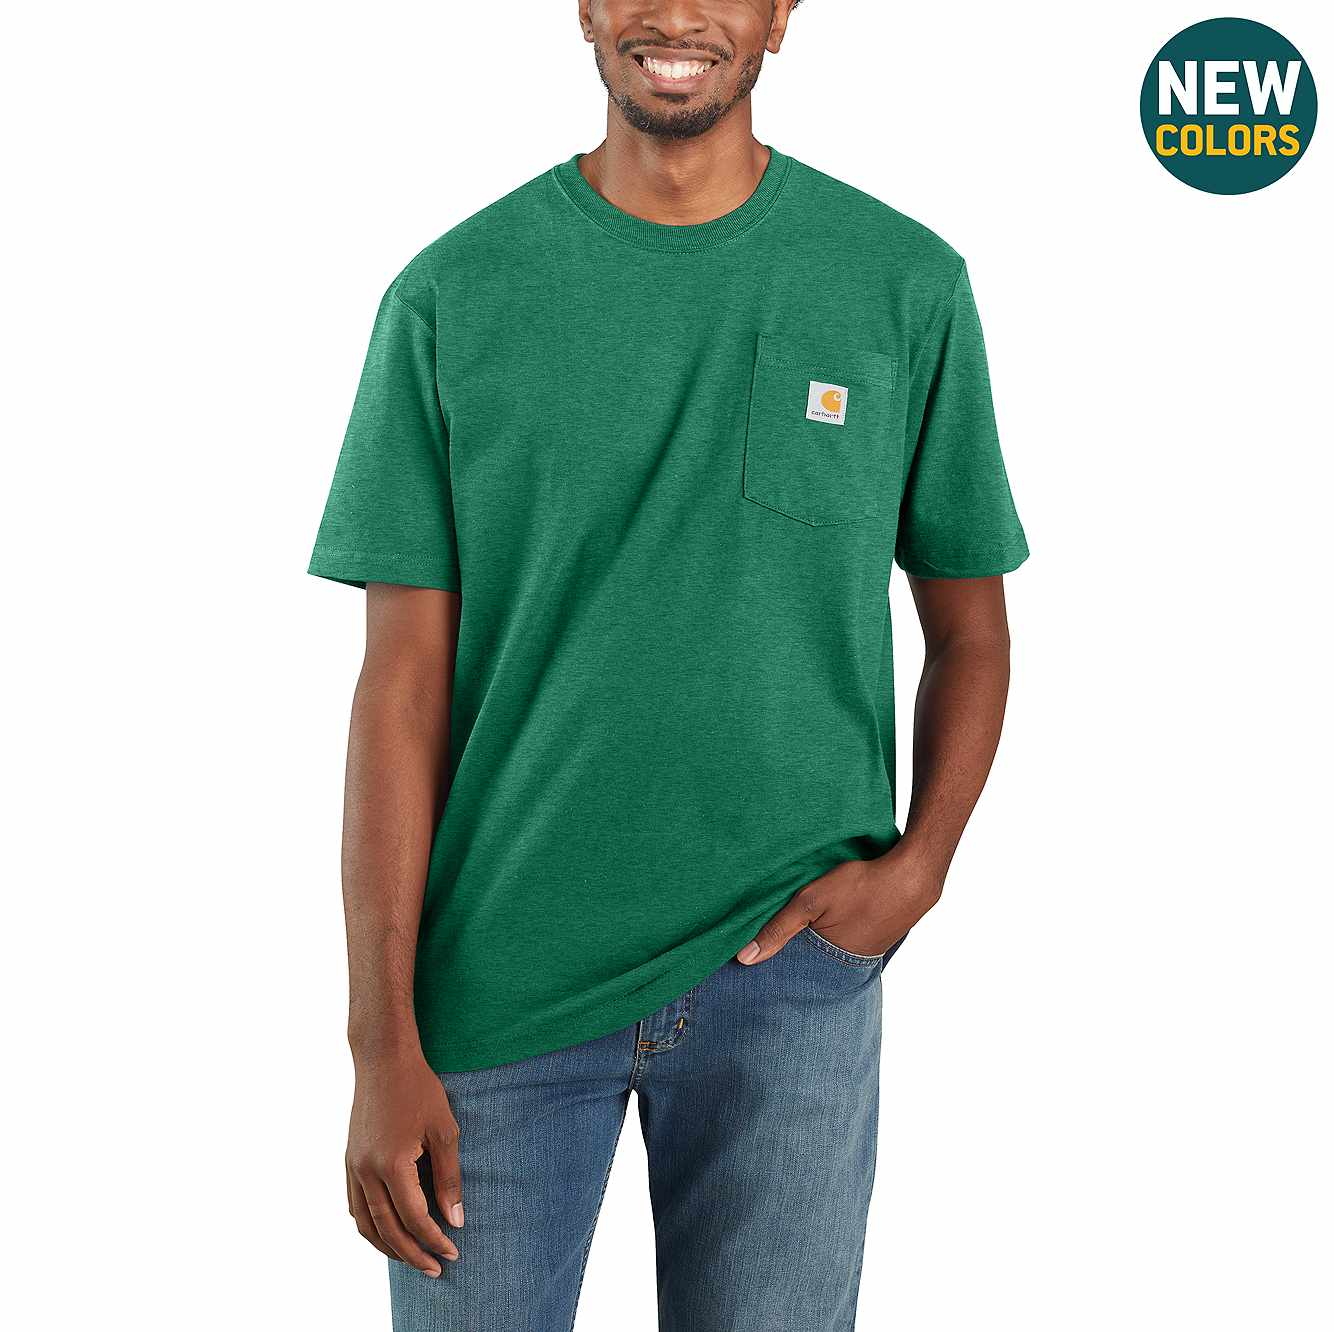 Picture of Loose Fit Heavyweight Short-Sleeve Pocket T-Shirt in North Woods Heather